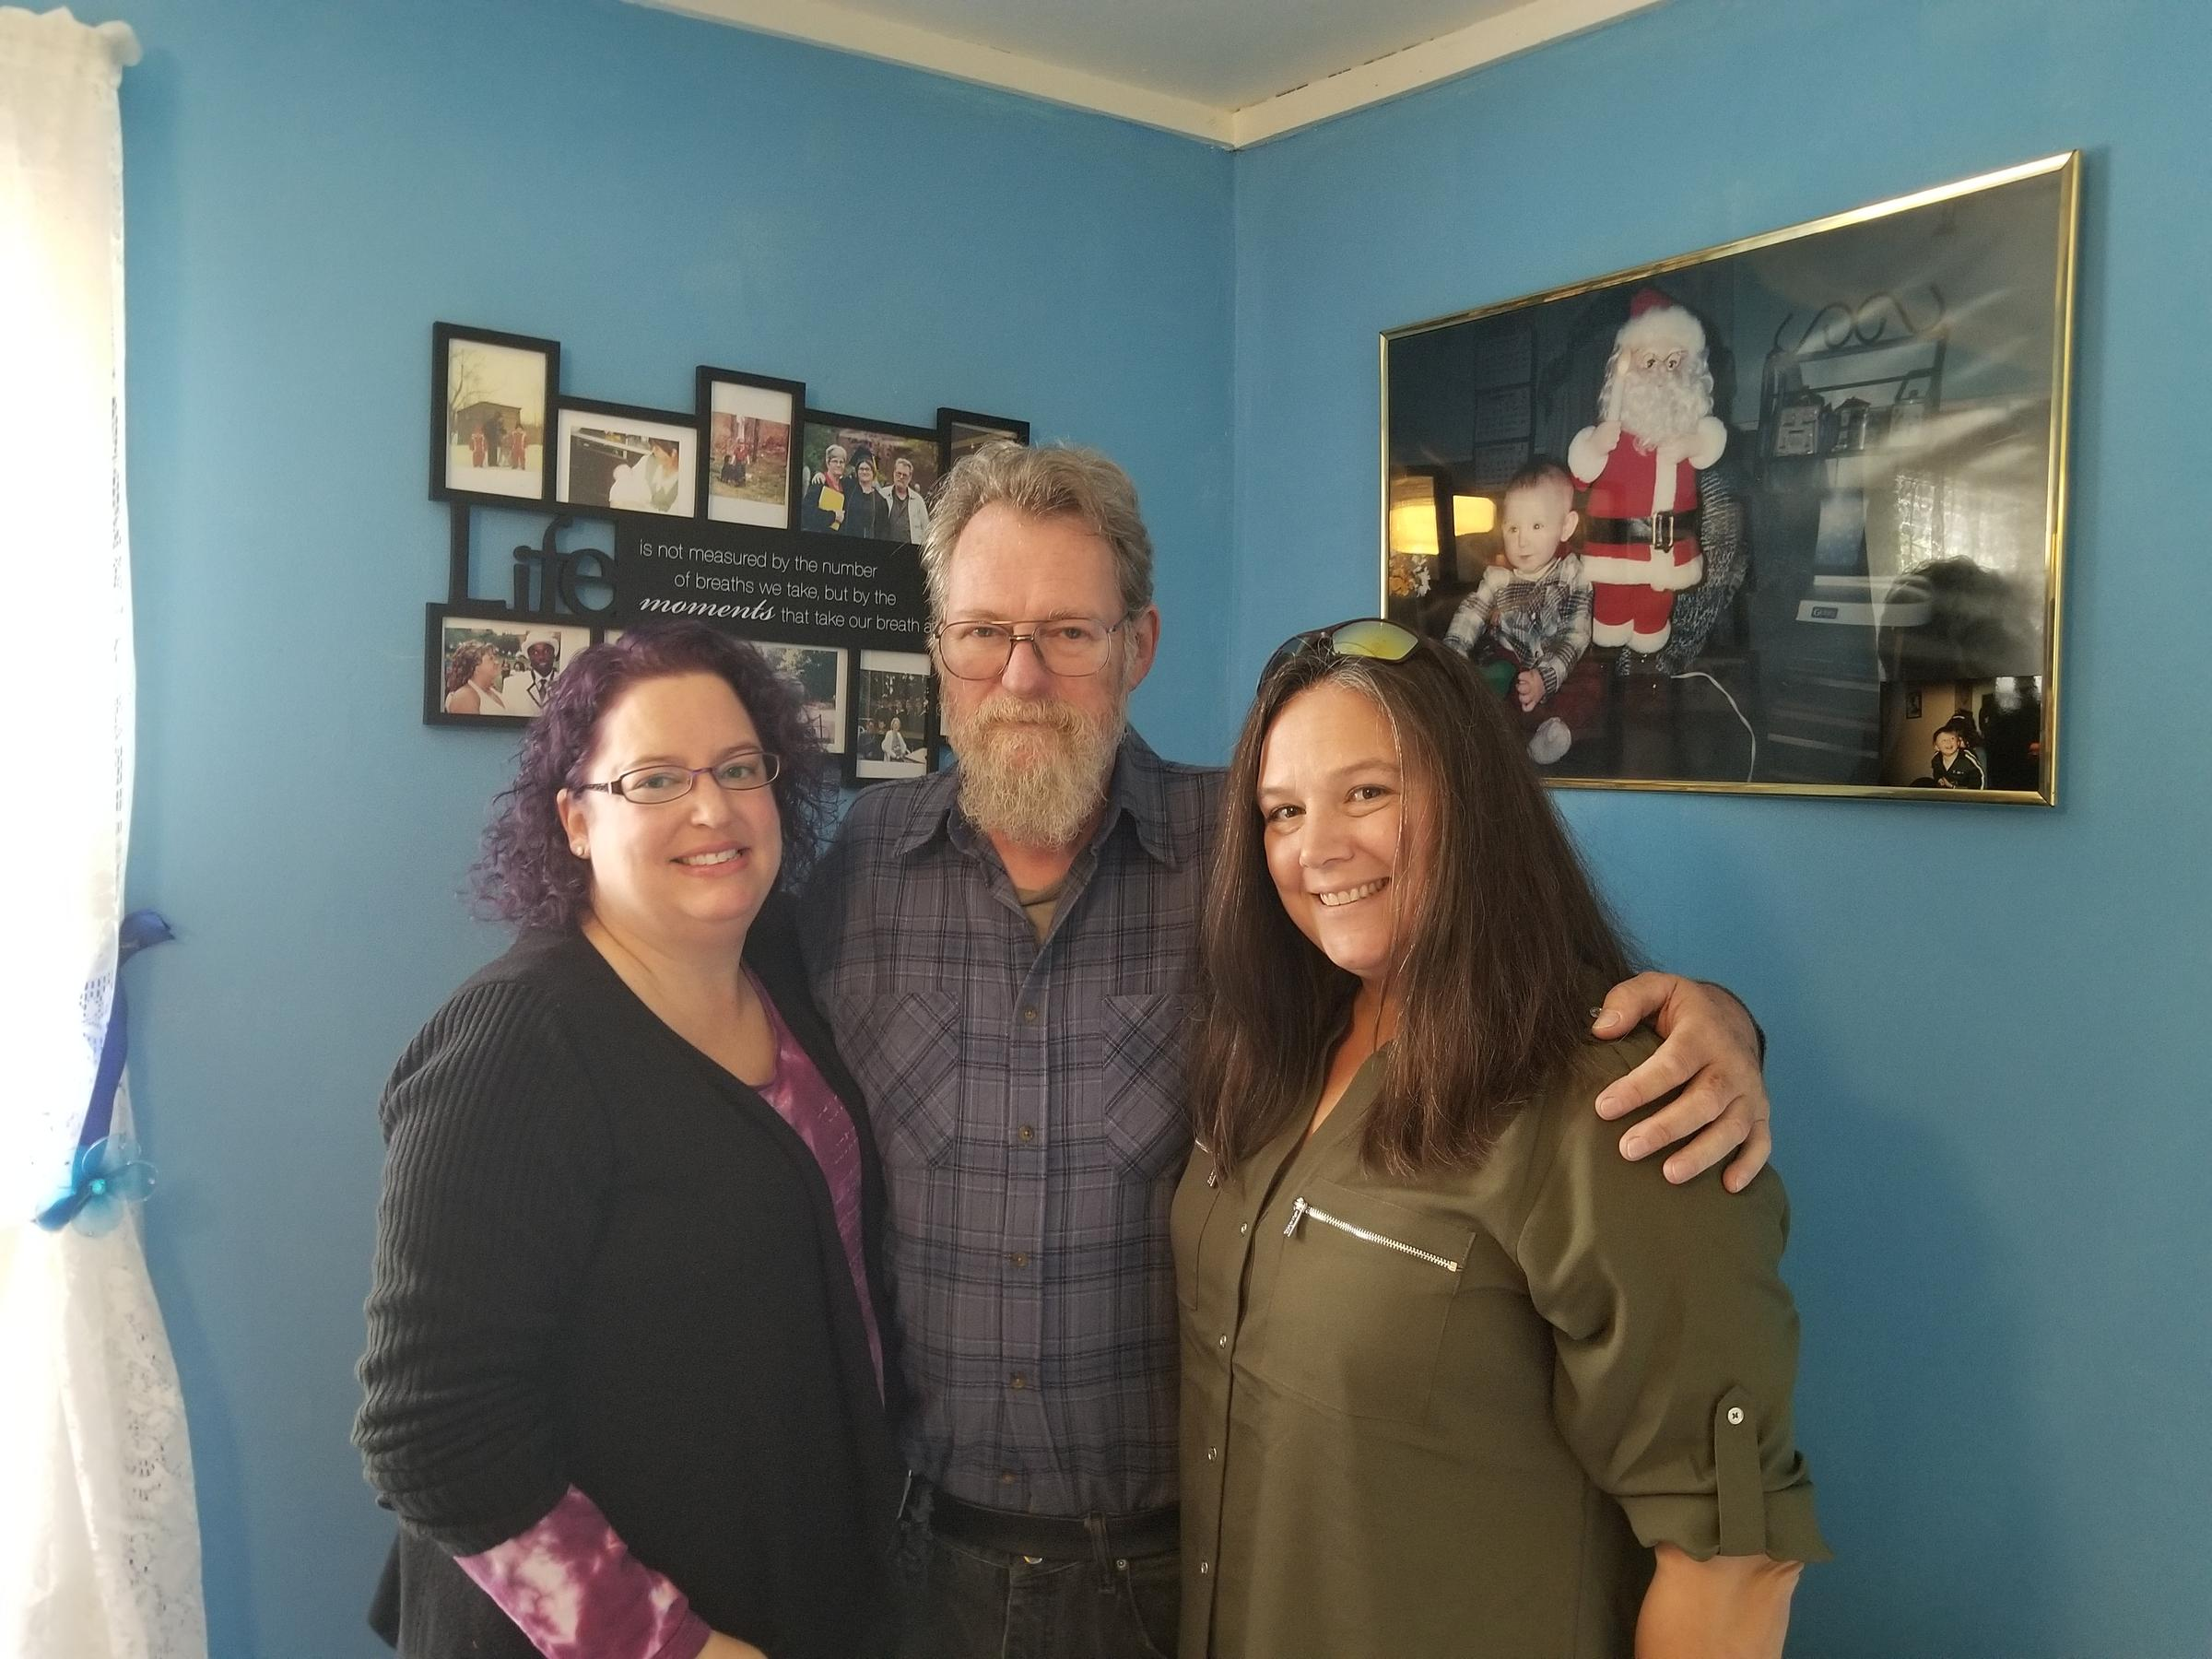 Alisa Costa, Don Hill, and Christine Isca